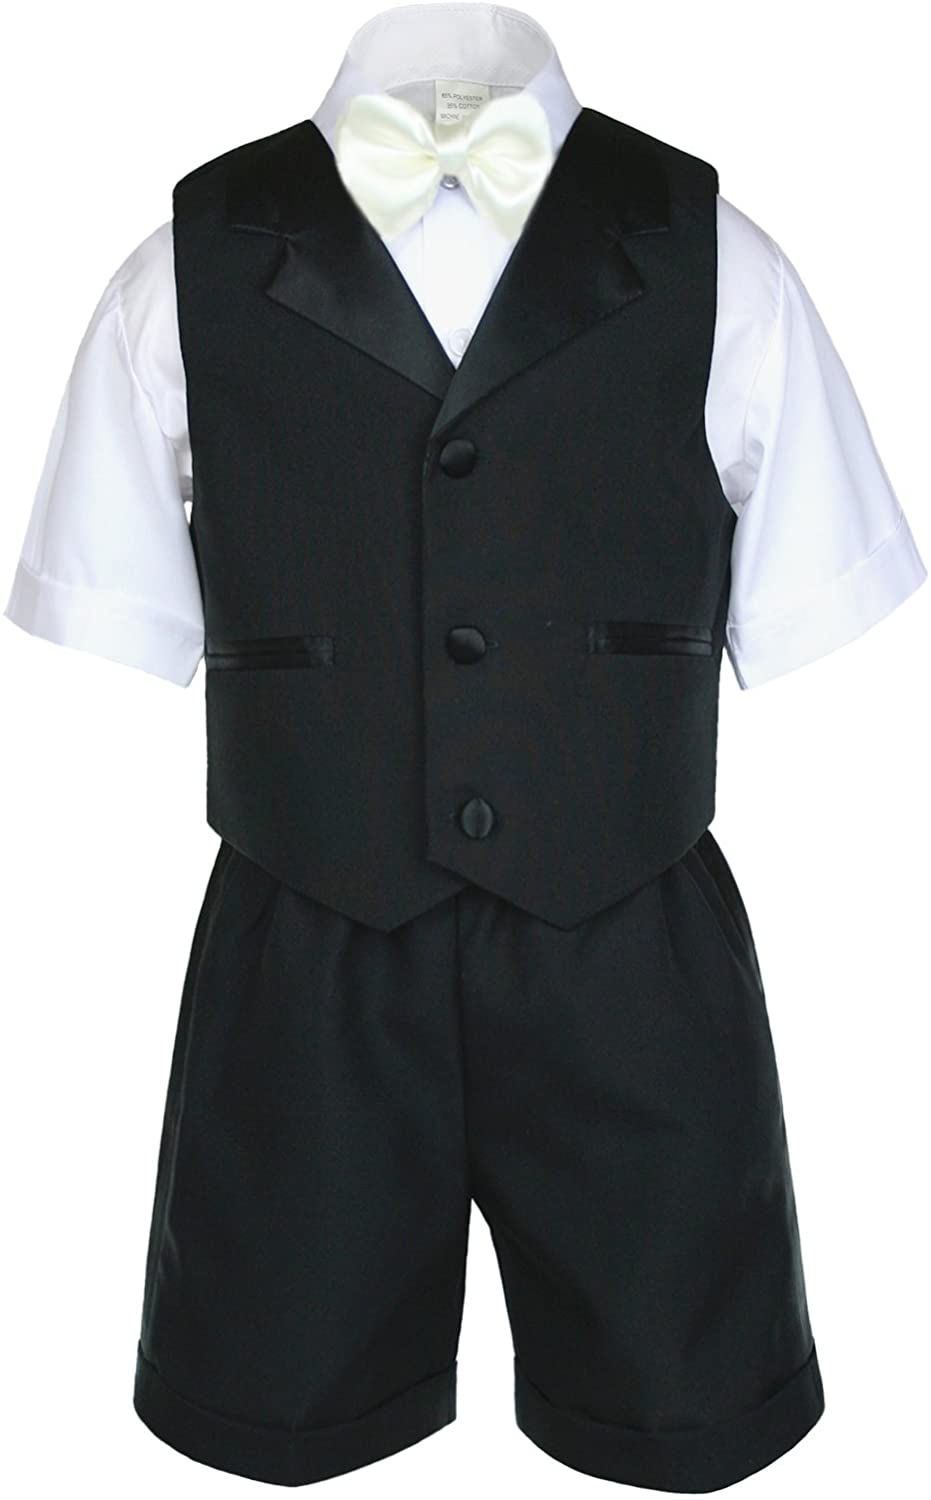 Unotux Boys Black Short Vest Sets Suits Outfits Extra Ivory Bow Tie Baby Toddler